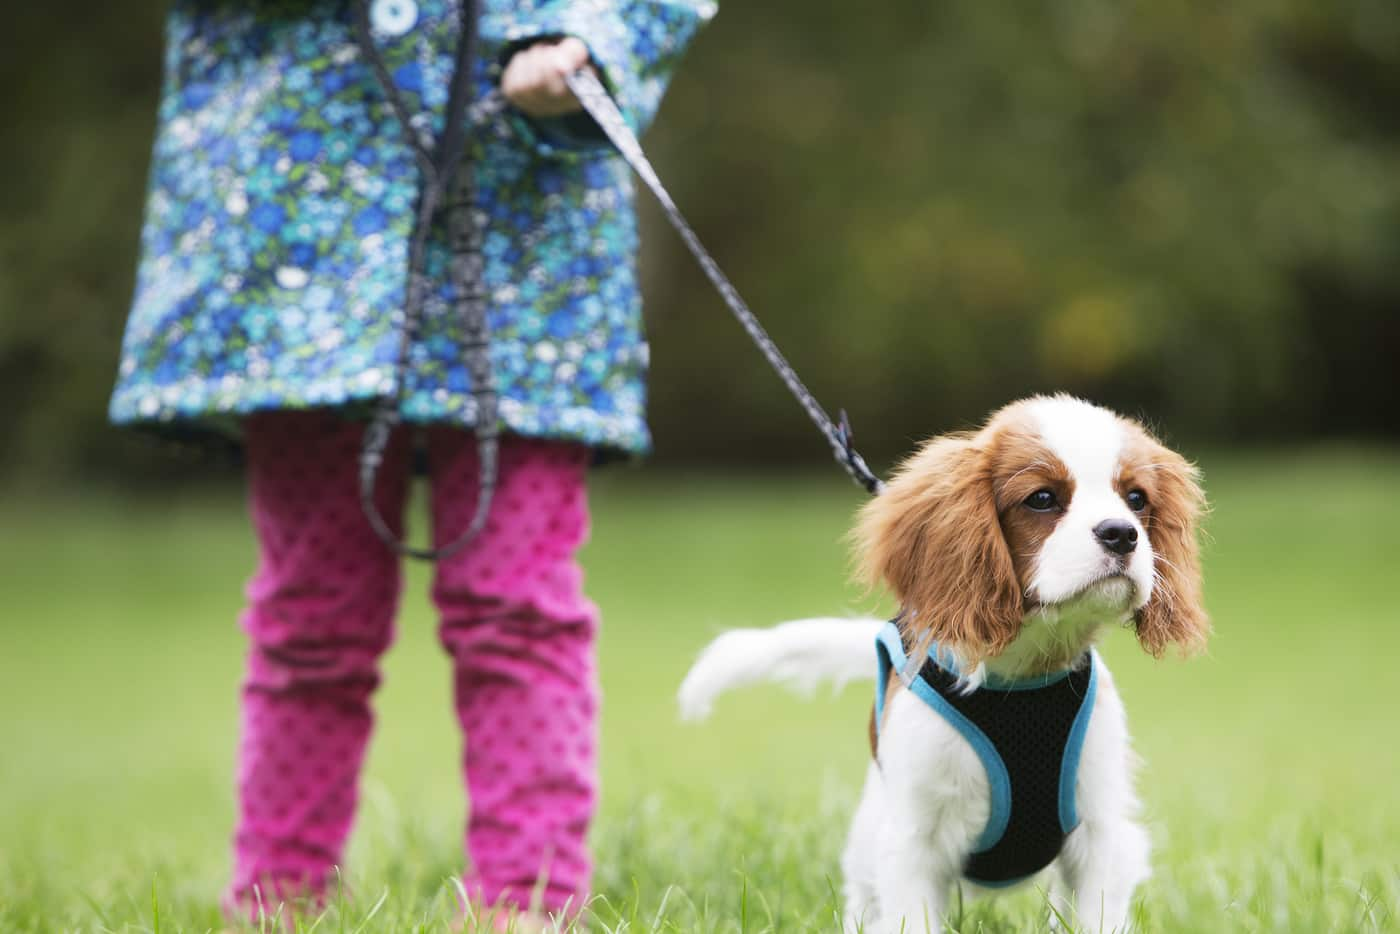 Little girl in pink pants walking a Cavalier King Charles puppy outside